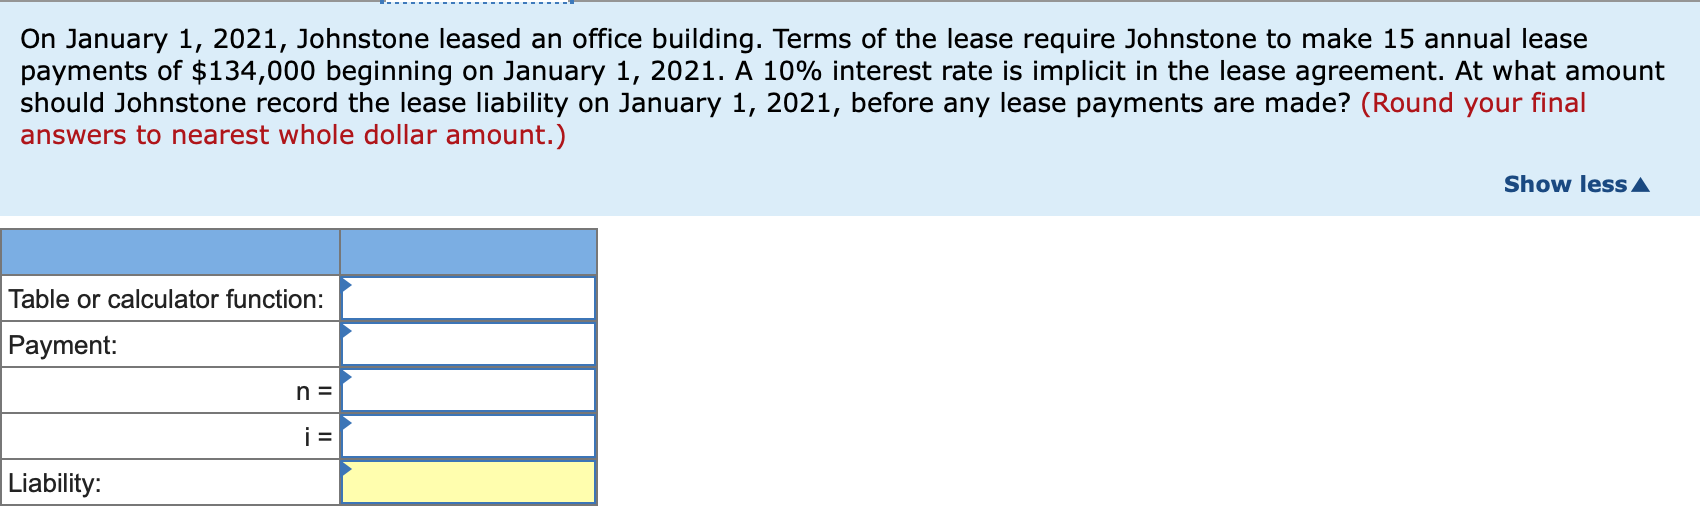 On January 1, 2021, Johnstone leased an office building. Terms of the lease require Johnstone to make 15 annual lease payment